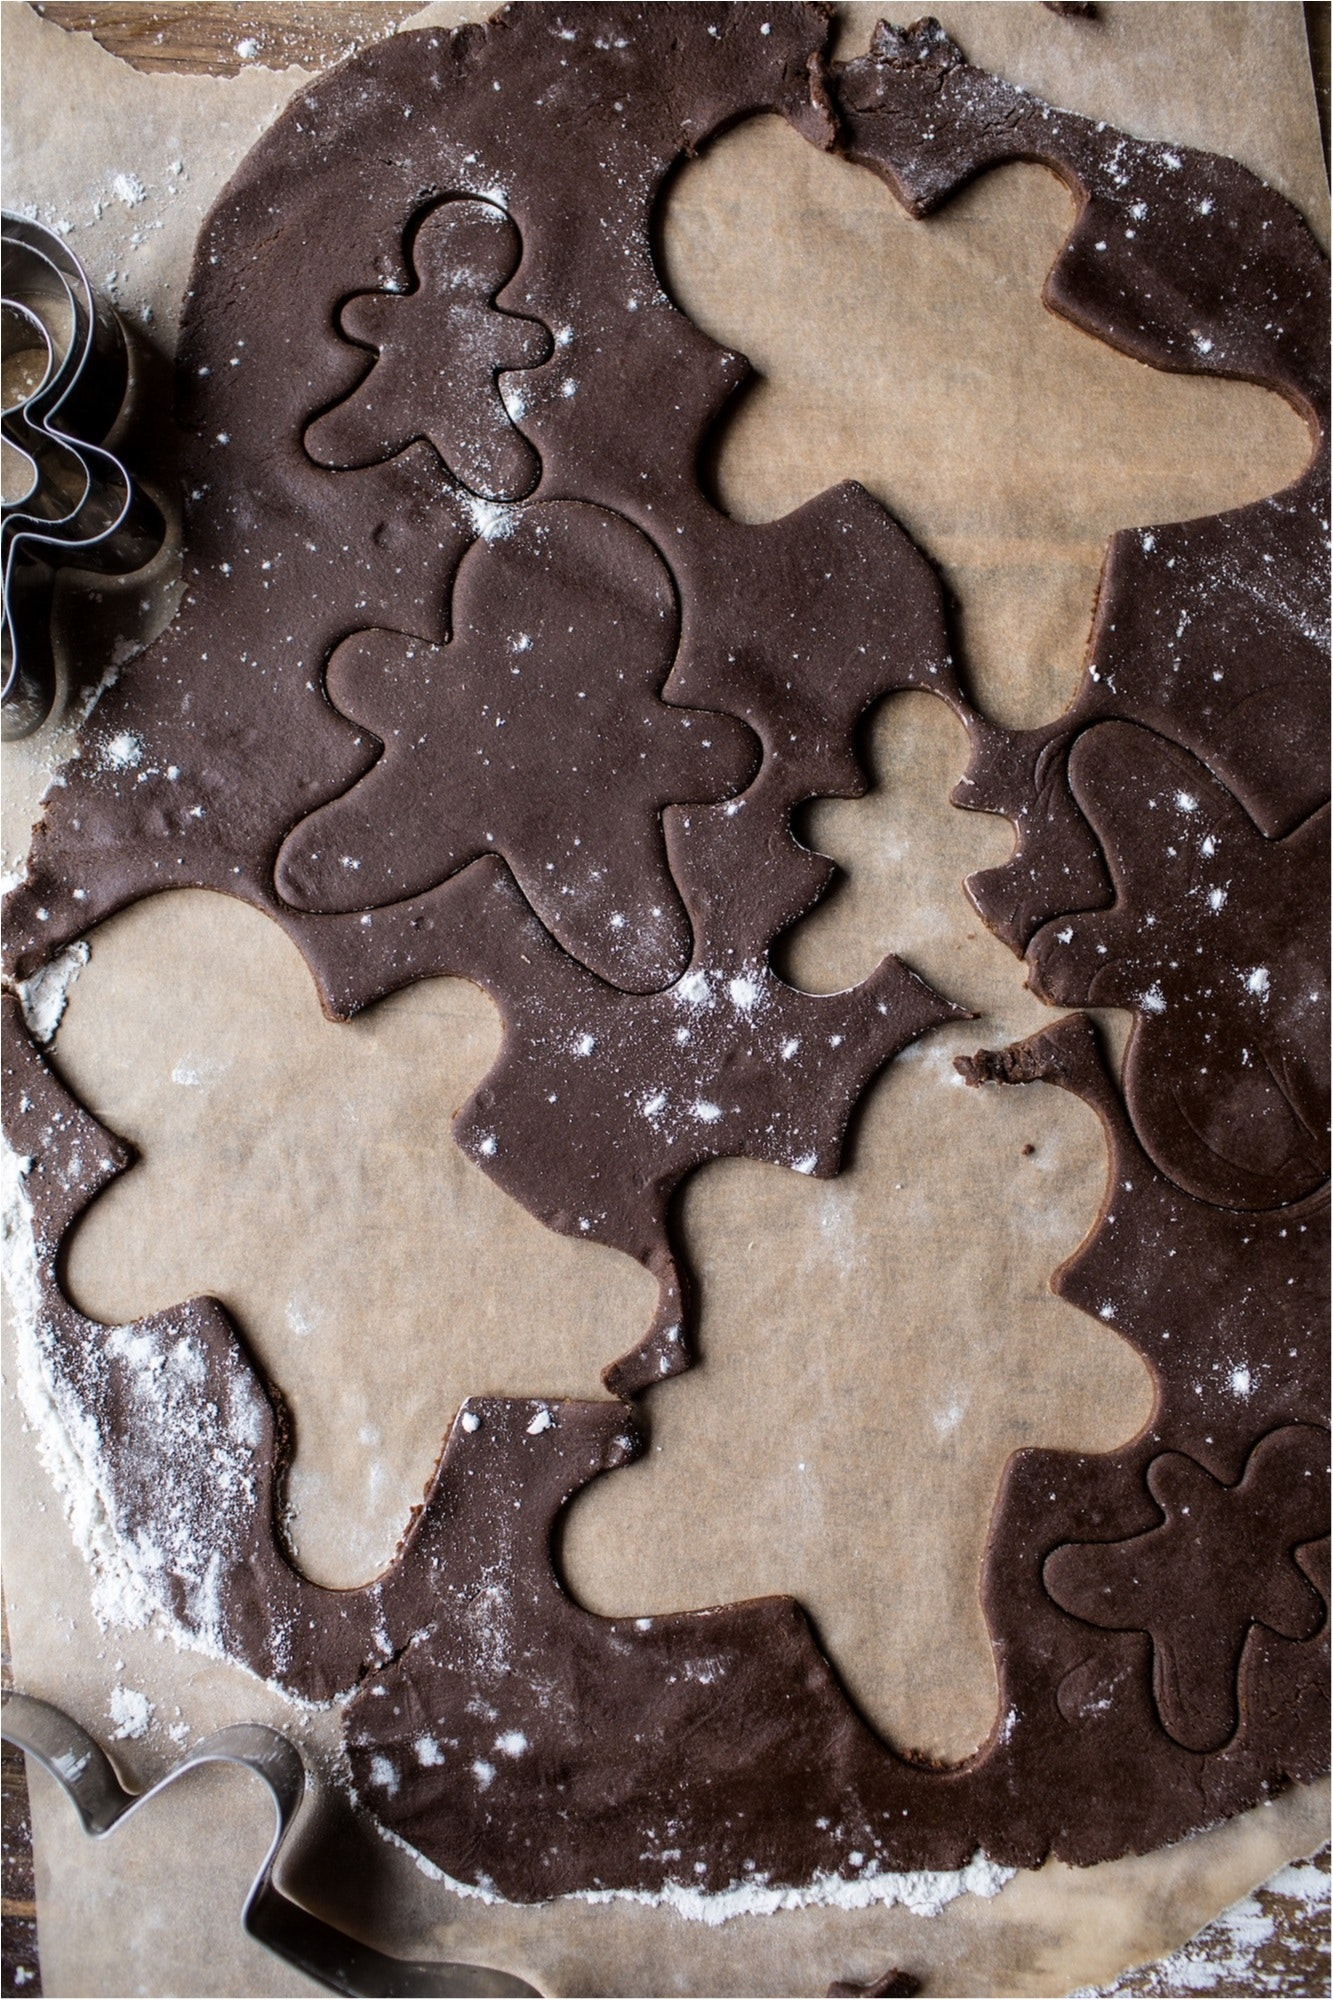 Chocolate-Dipped-Gingerbread-Cookies-with-Vanilla-Salt-3resize